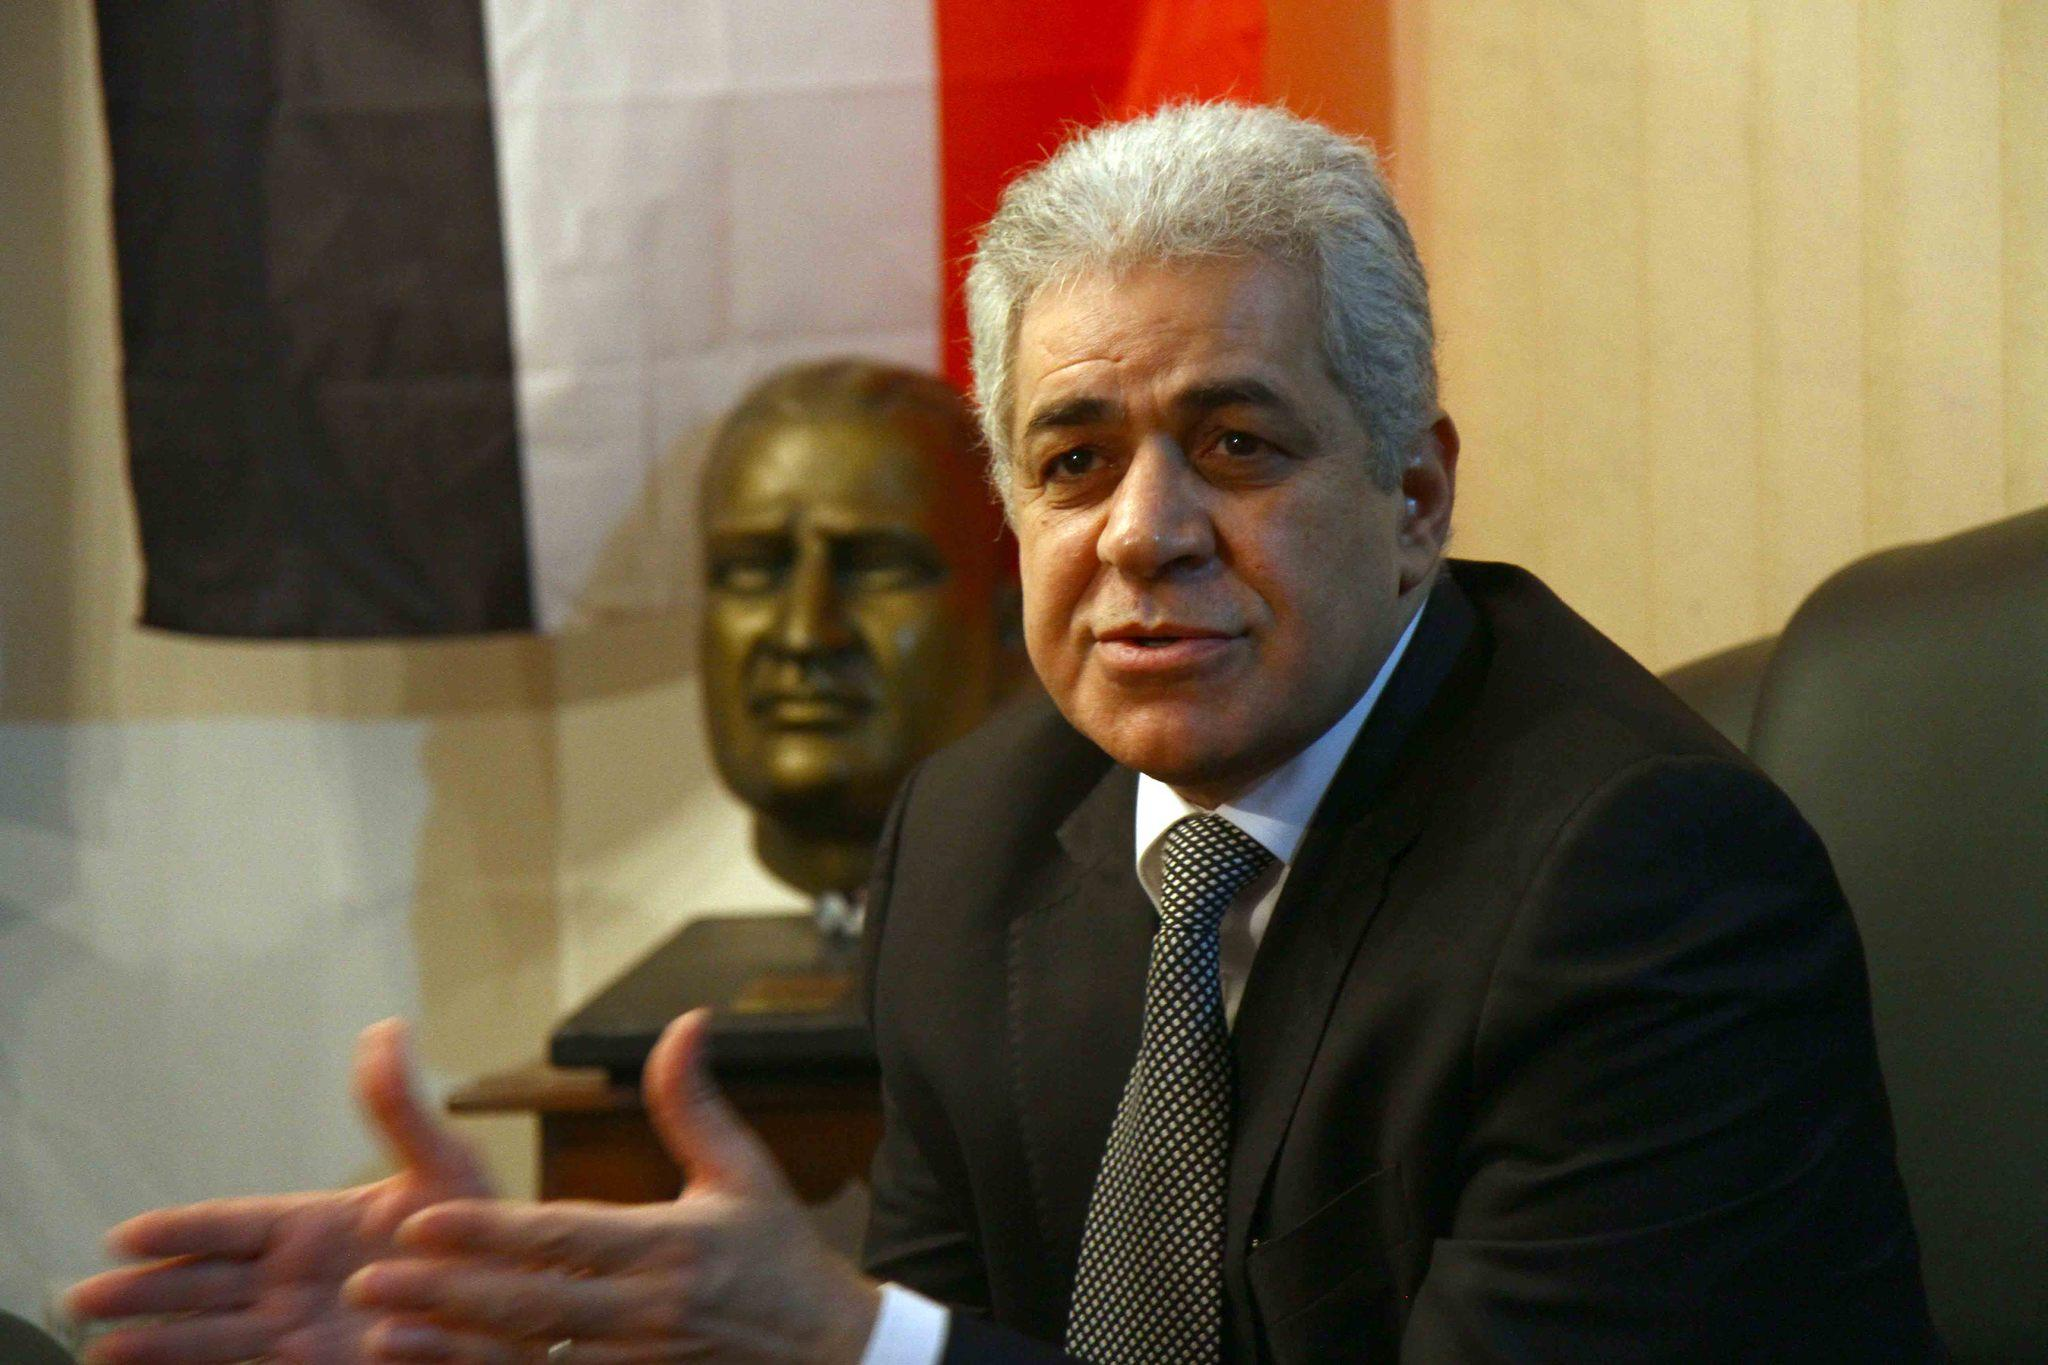 Egyptian presidential candidate Hamdeen Sabahi's campaign denied remarks attributed to him in an audio recording in which a person with a voice that sounds like his says he would put former army chief Abdel Fattah Sisi on trial for the deaths of hundreds of protesters.